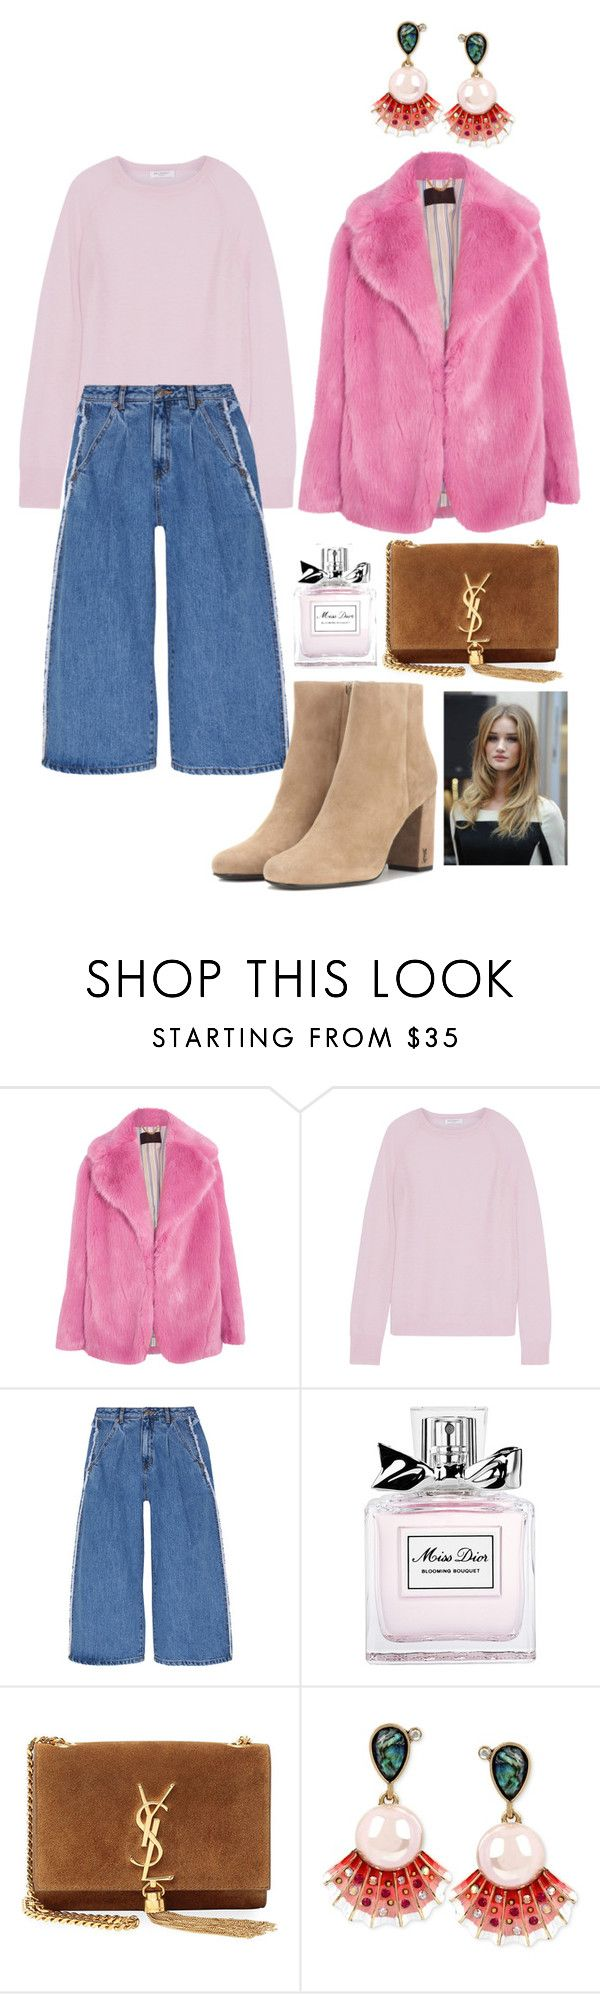 """""""Untitled #29"""" by megan-adam ❤ liked on Polyvore featuring J.Crew, Equipment, Steve J & Yoni P, Christian Dior, Yves Saint Laurent, Whiteley and Betsey Johnson"""